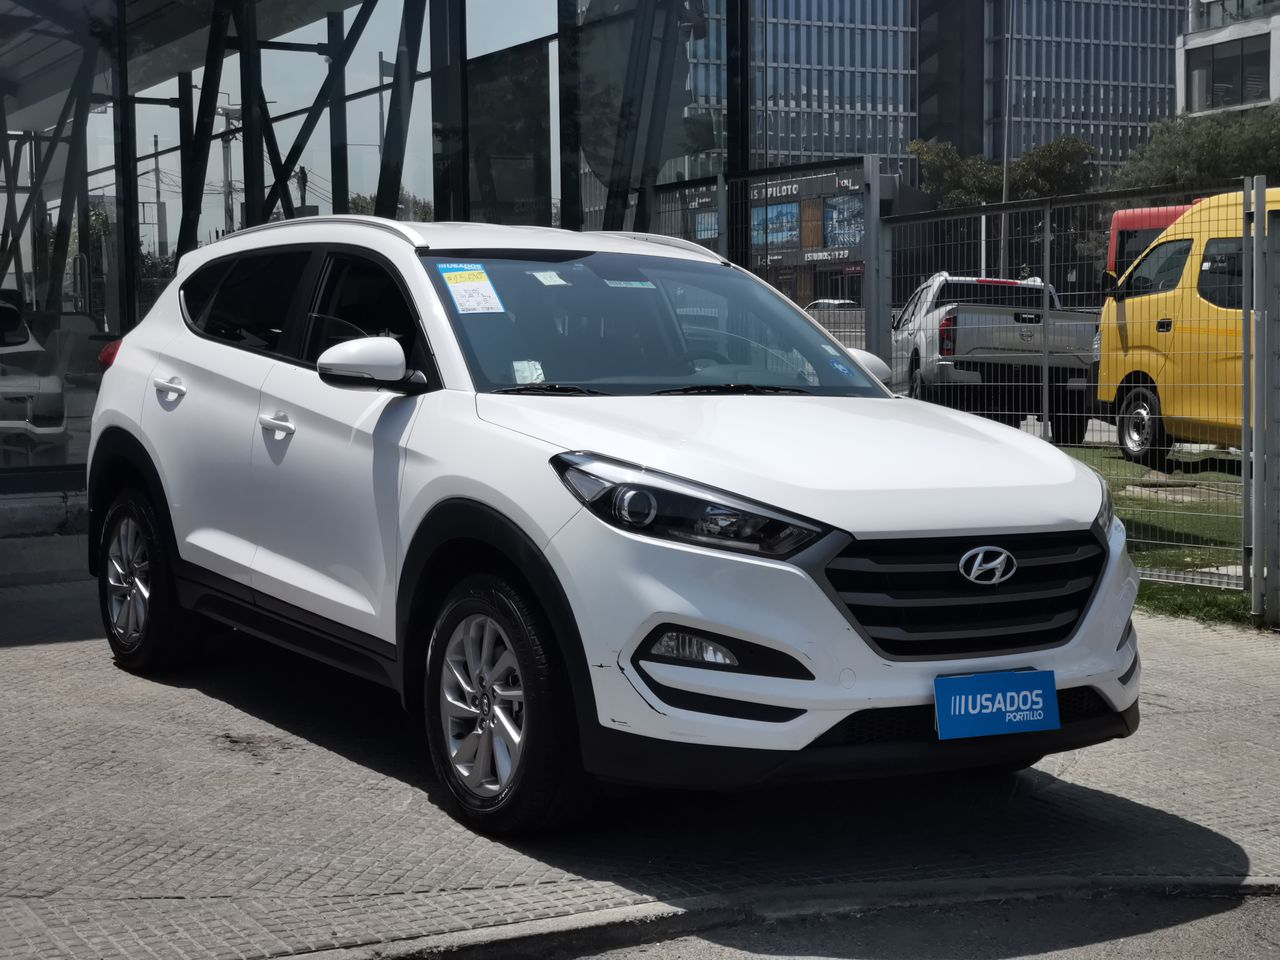 Hyundai Tucson Tl Gl Advance 2.0 At 2016  Usado en Automotriz Portillo